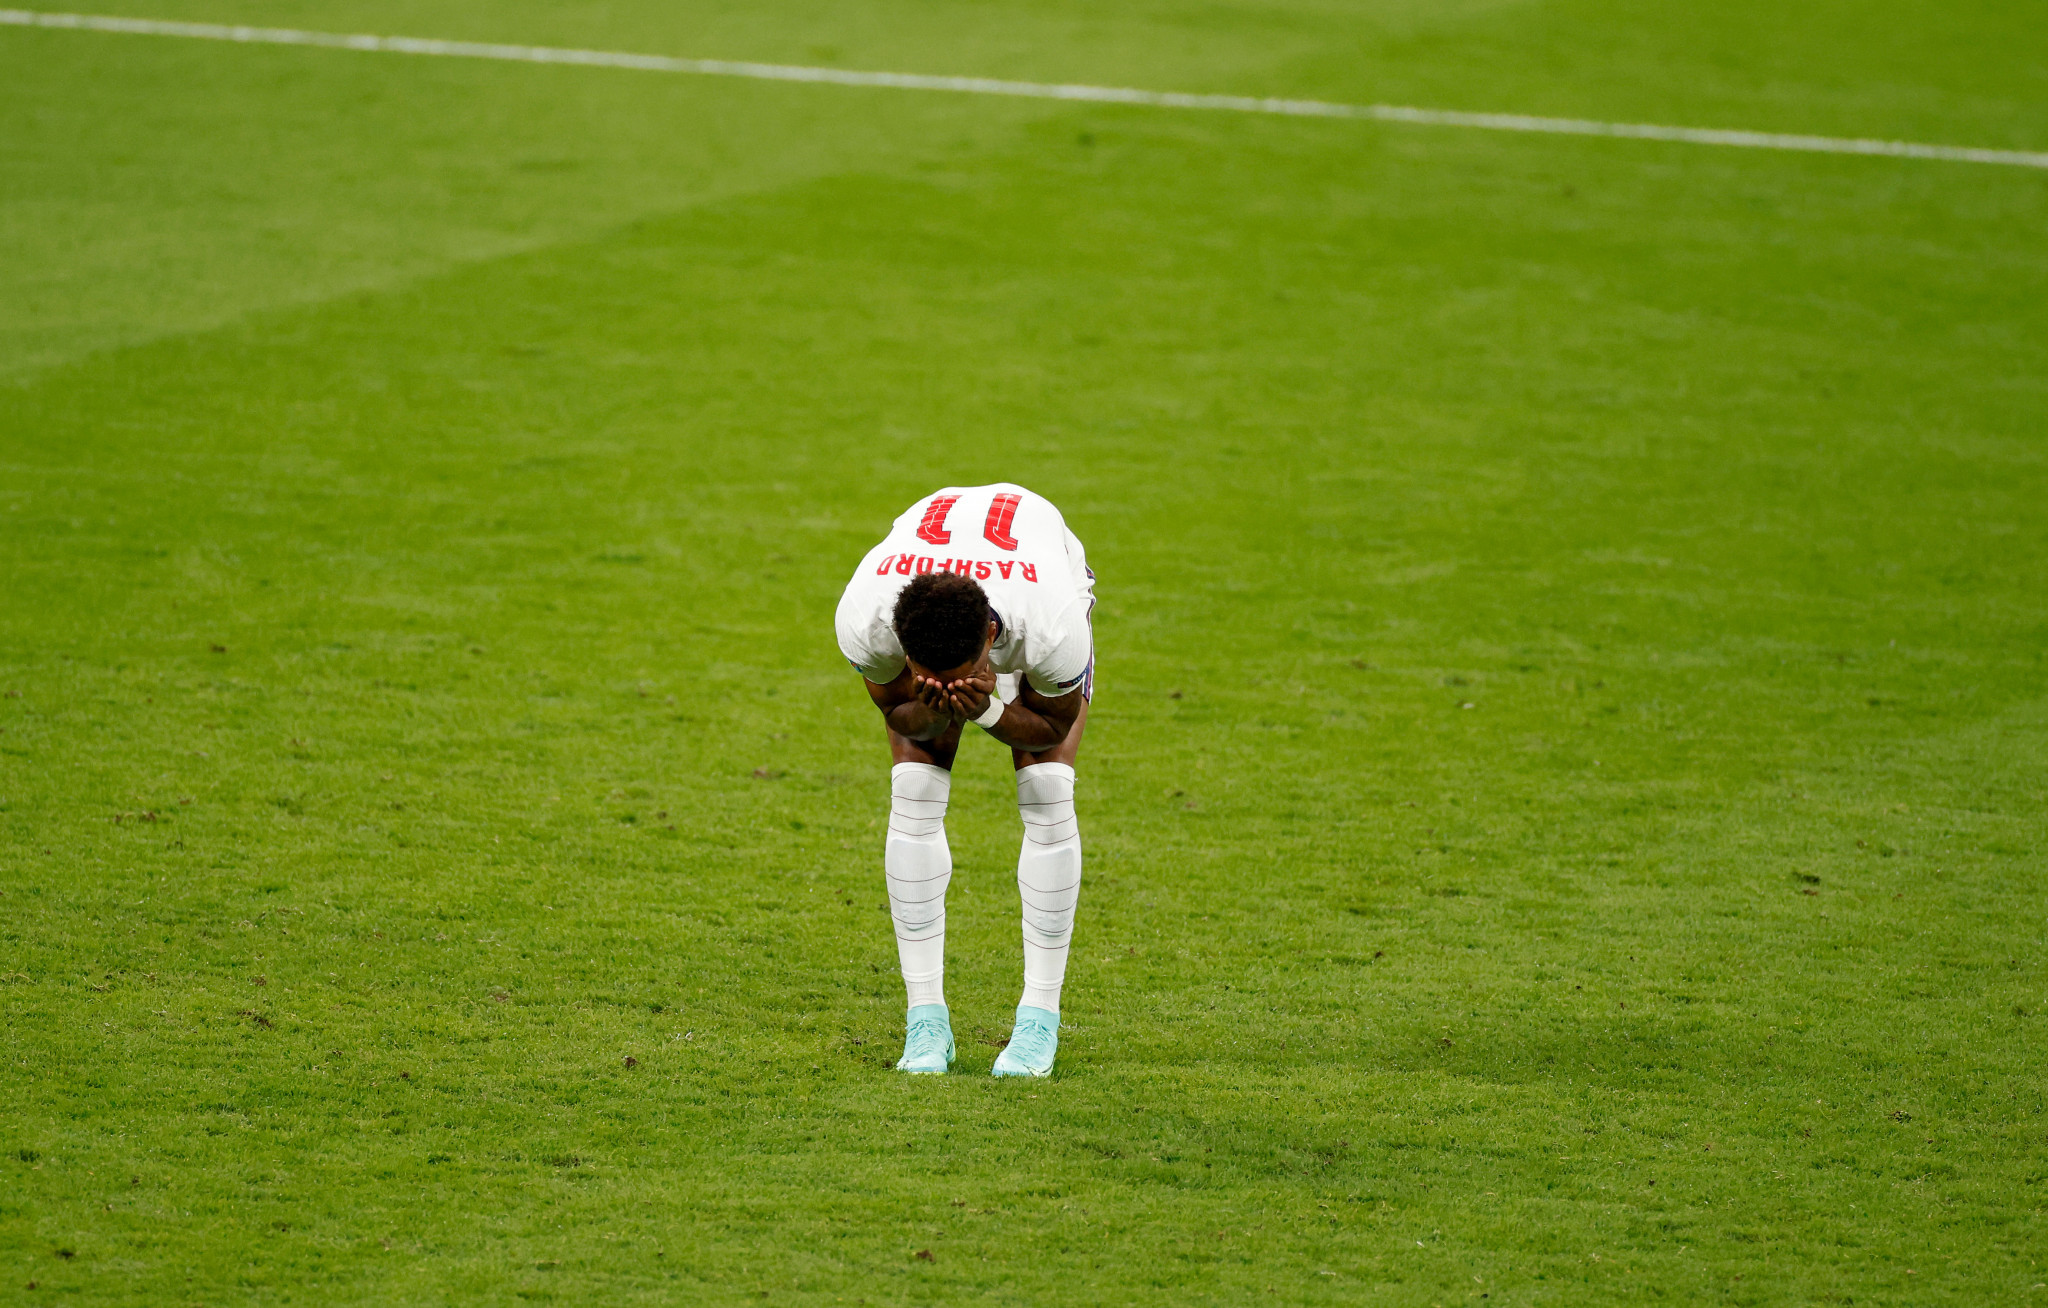 The England players who missed penalties have been subjected to vile abuse online ©Getty Images